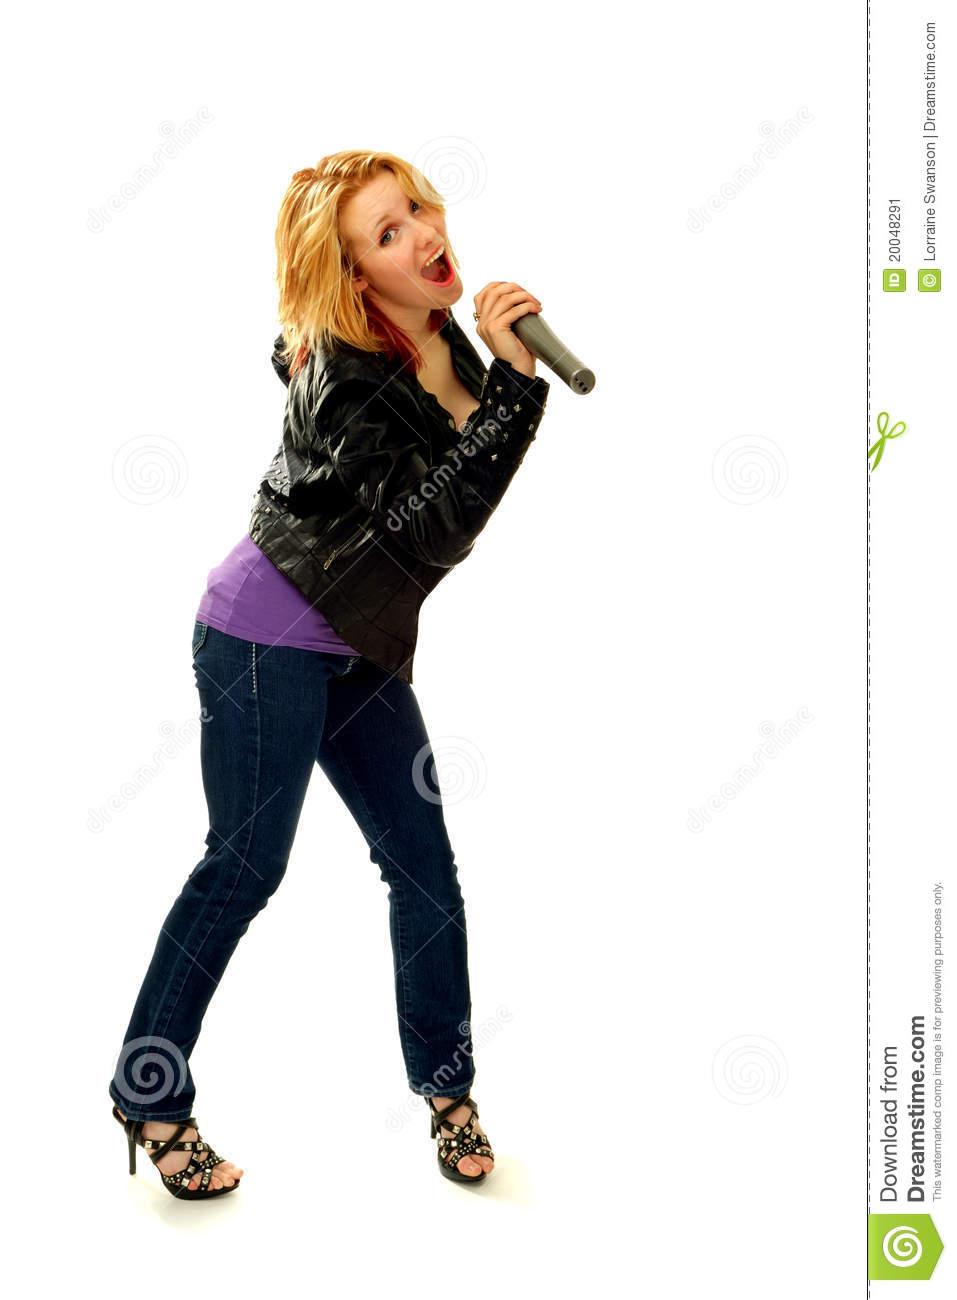 Happy Blond Woman Singing with Microphone